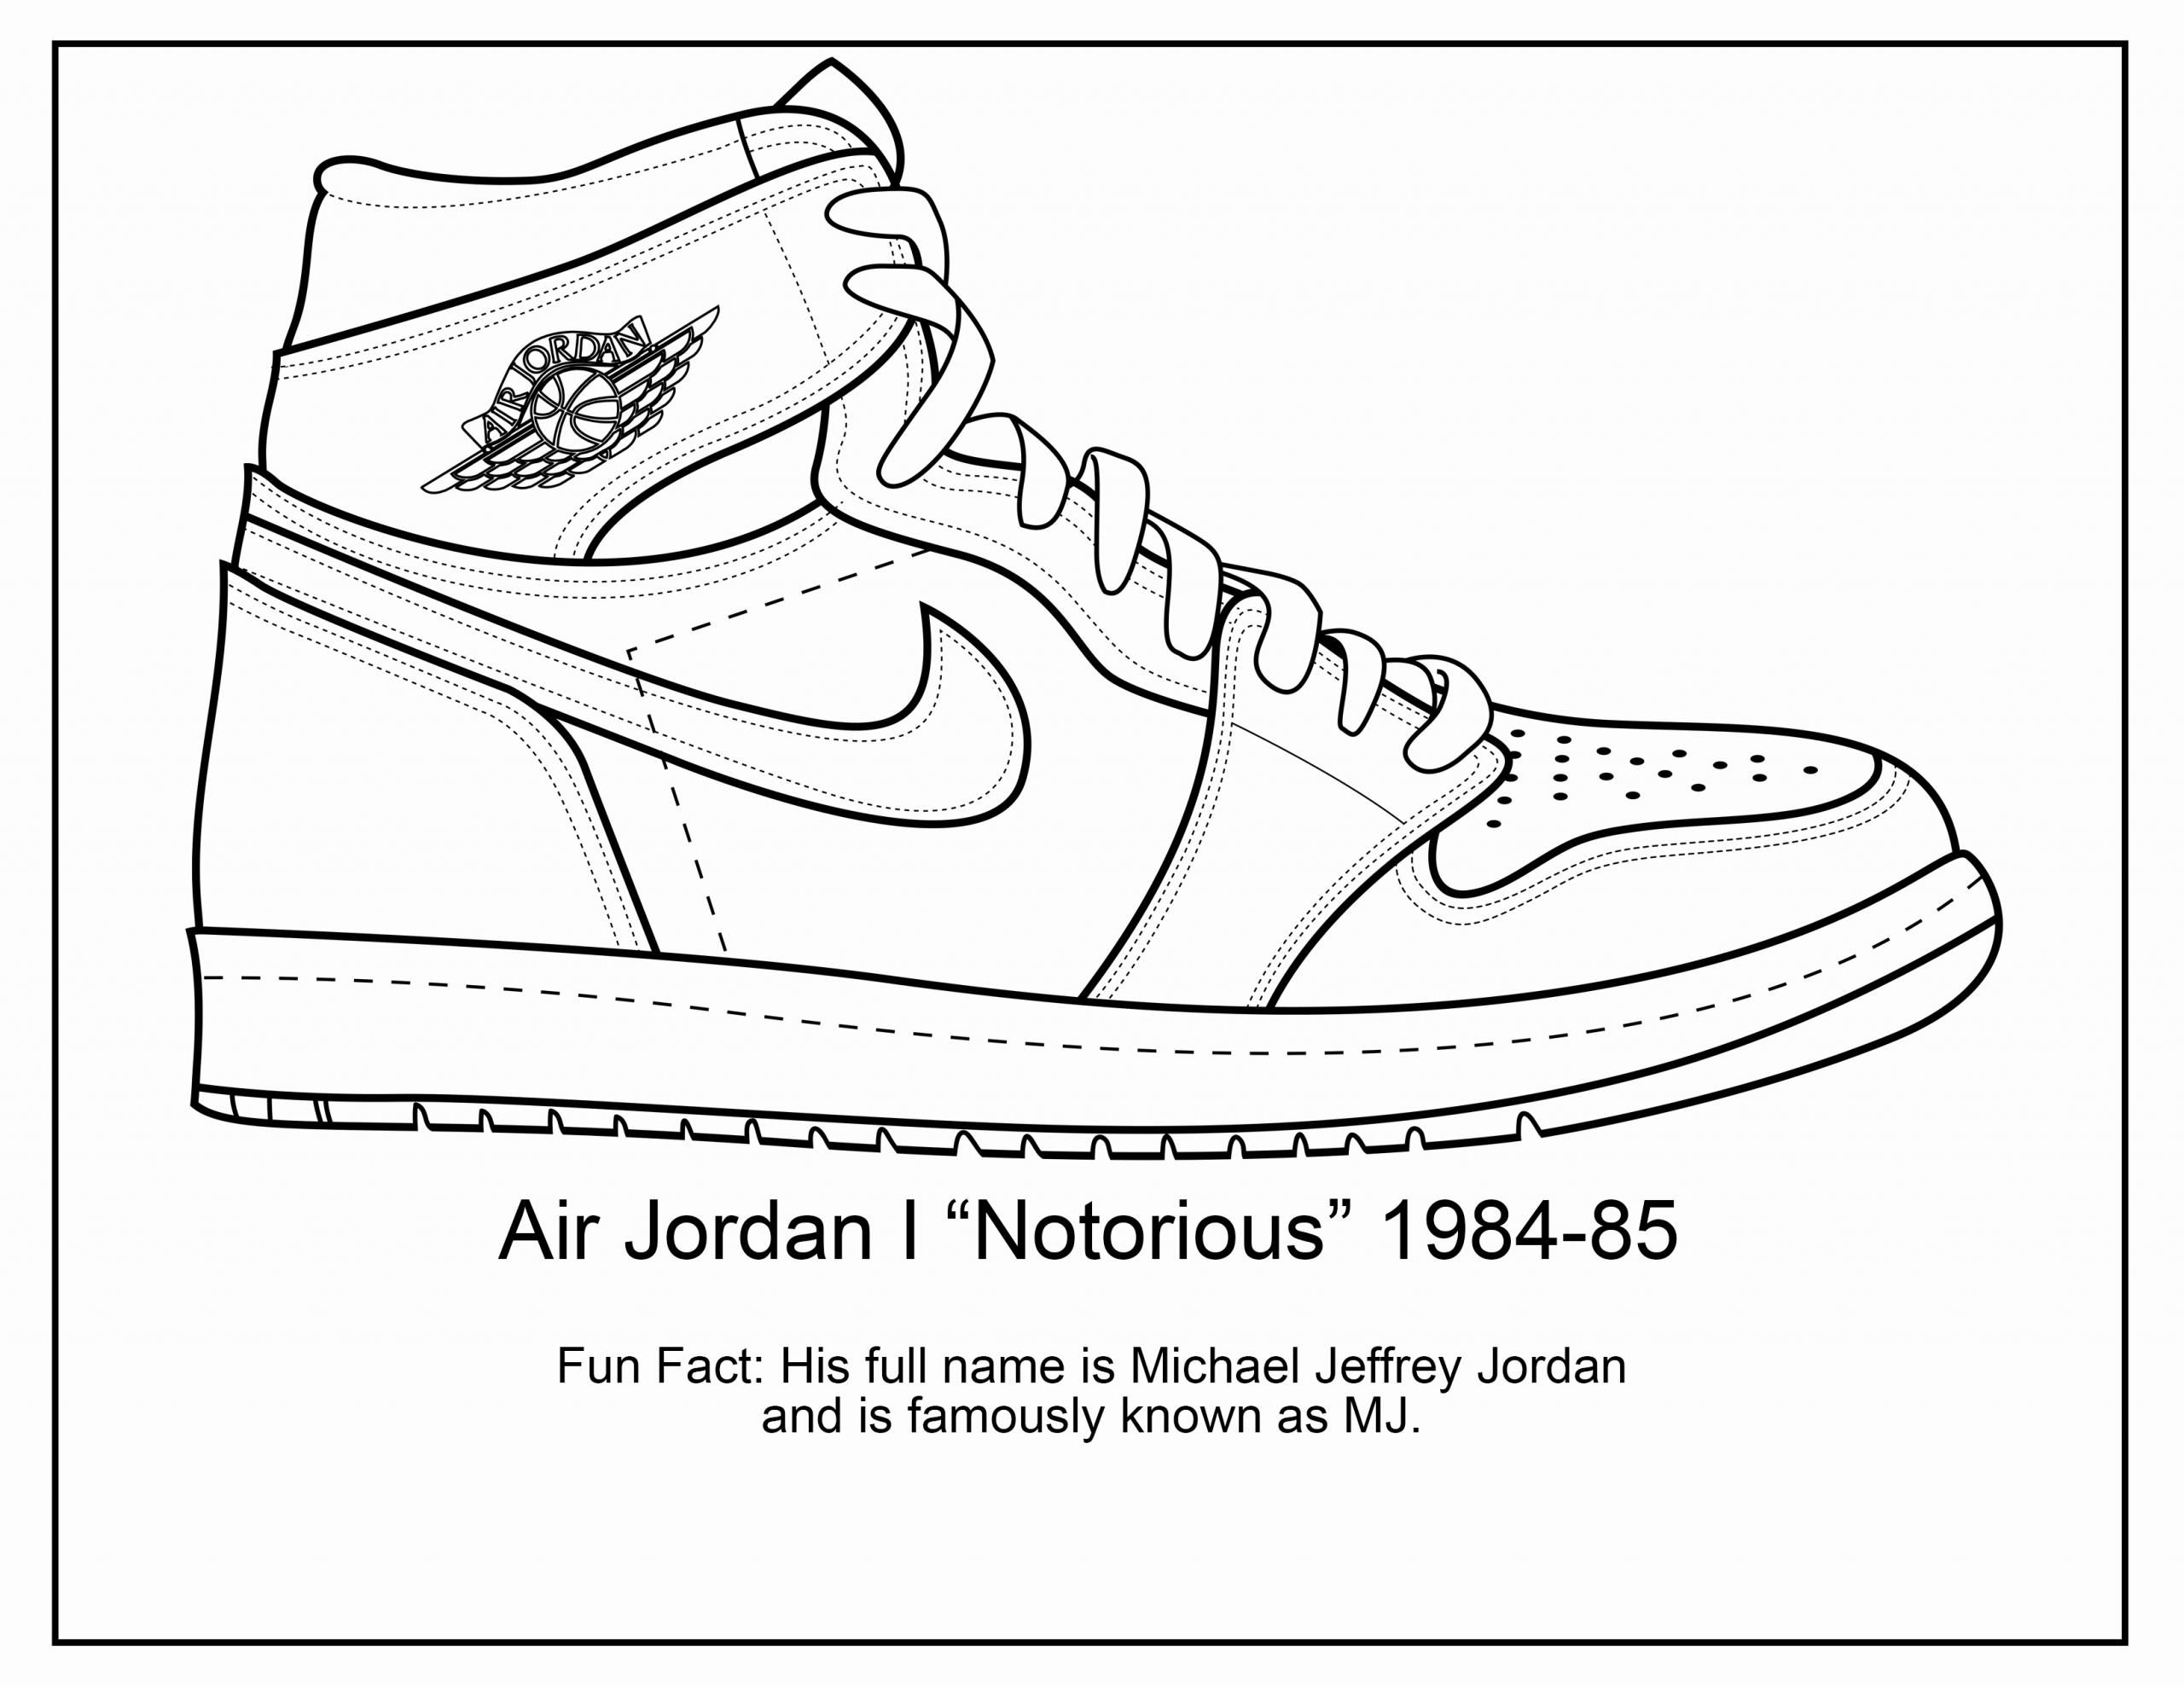 Jordan Shoe Coloring Book New Pin On Scroll Saw Projects Sneakers Illustration Sneakers Sketch Best Sneakers